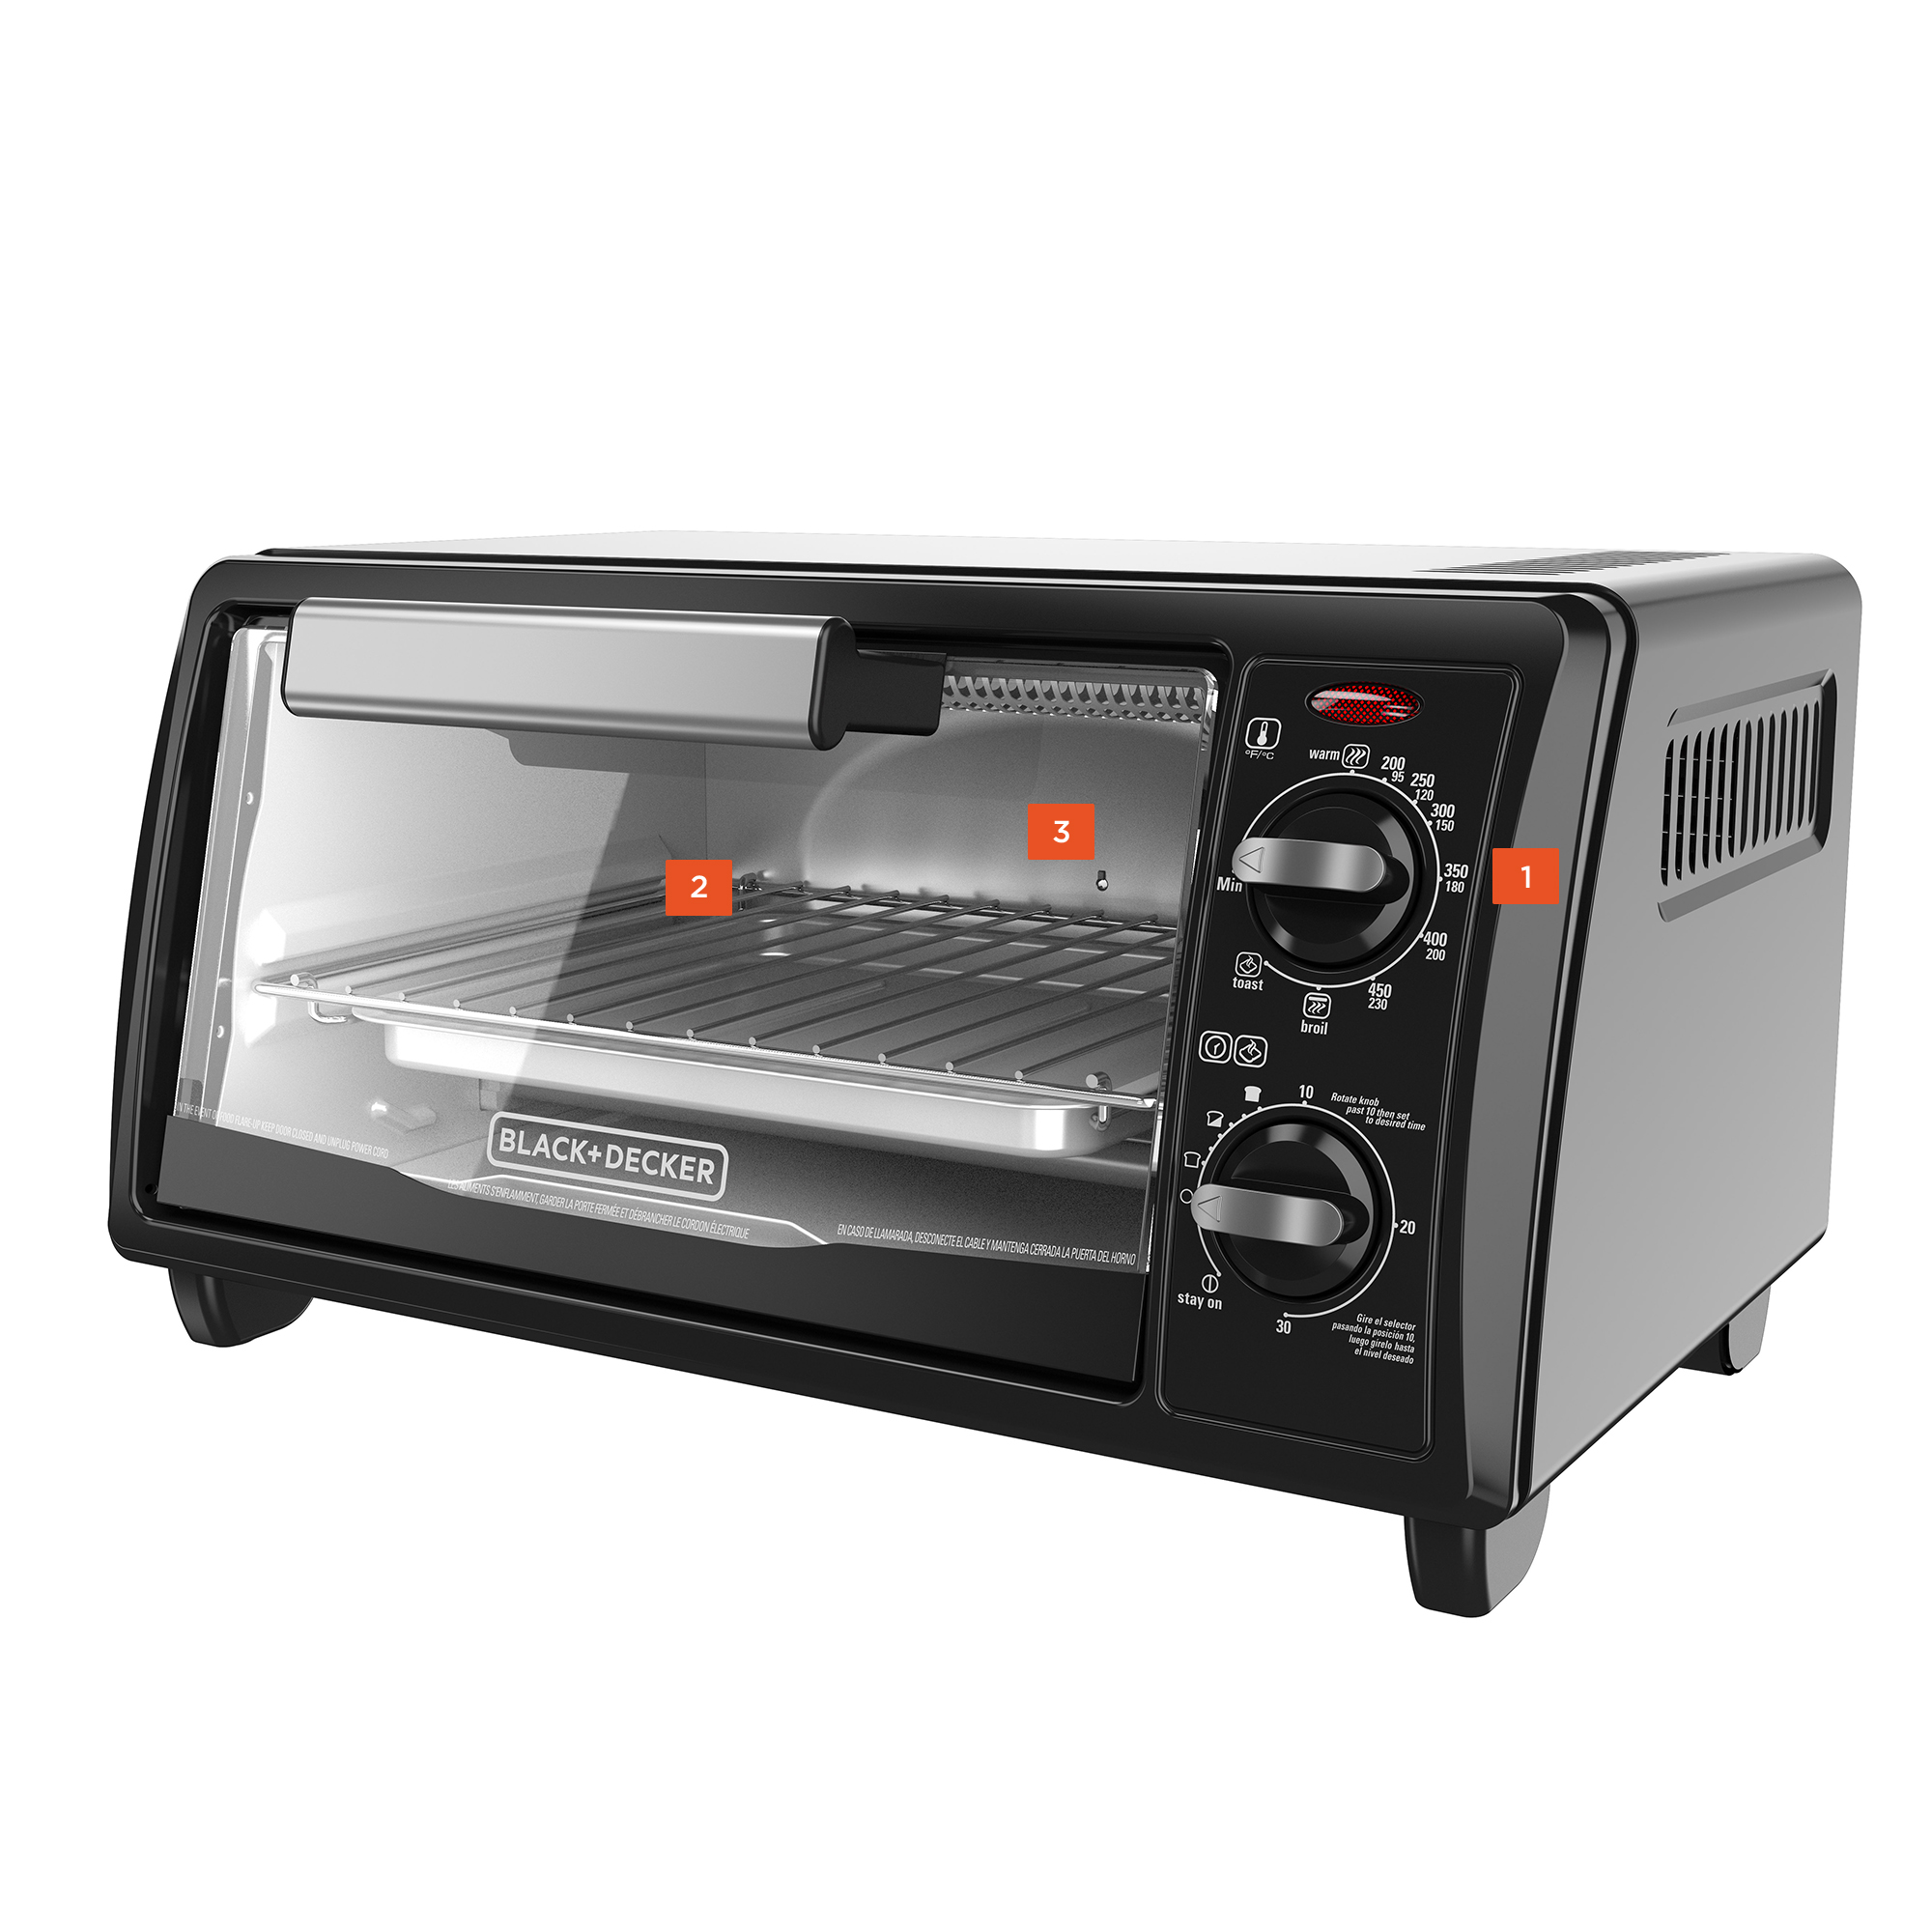 TO1342B.ashx?h=500&la=en&mh=500&mw=527&w=500 convection and toaster ovens cooking appliances black decker black and decker toaster oven wiring diagram at panicattacktreatment.co